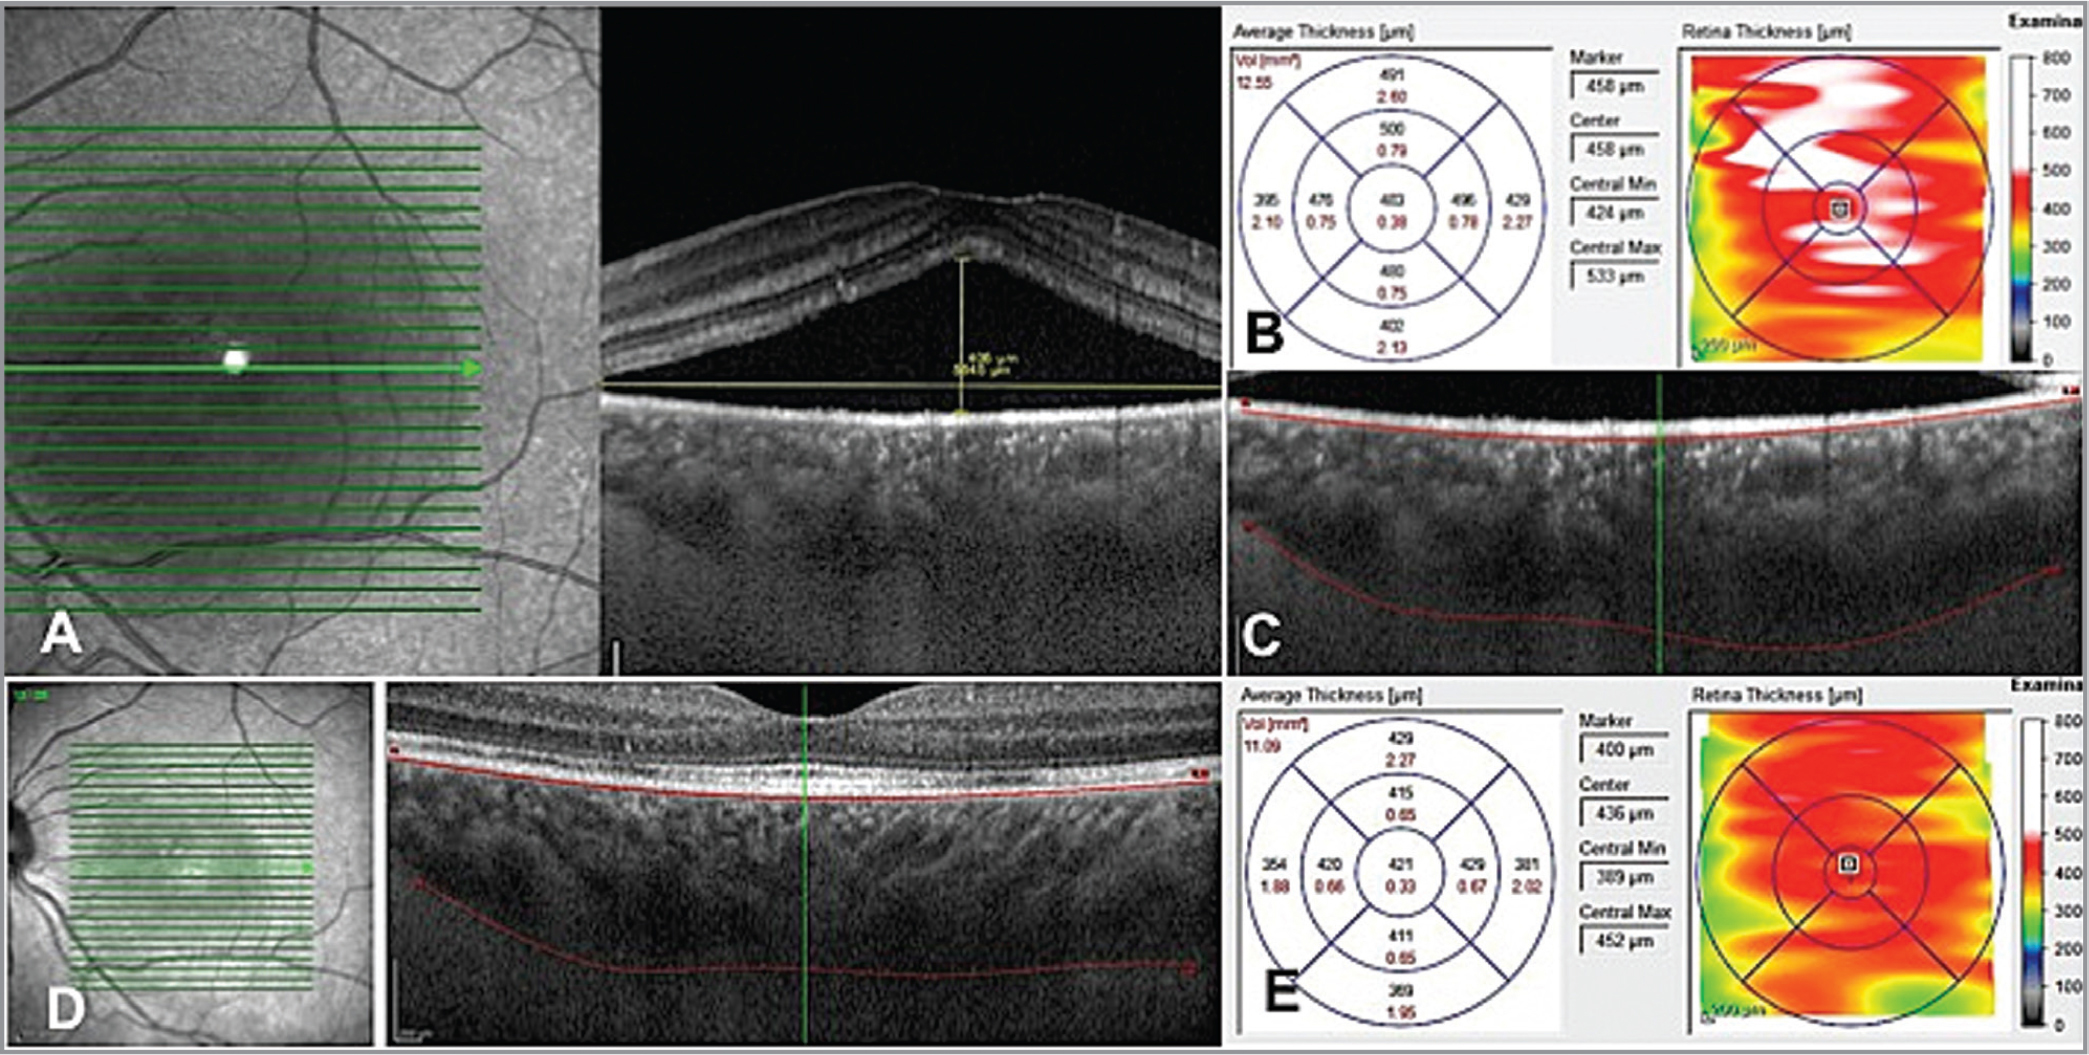 Optical coherence tomography findings and thickness of an acute central serous chorioretinopathy treated with eplerenone. (A) Infrared picture of the patient with subretinal fluid measurement and shaggy surface of photoreceptor layer. Choroidal volume (B) and thickness (C) are increased significantly in the primary visit. After 3 months of consuming eplerenone, the thickness (D) and volume (E) are diminished significantly.